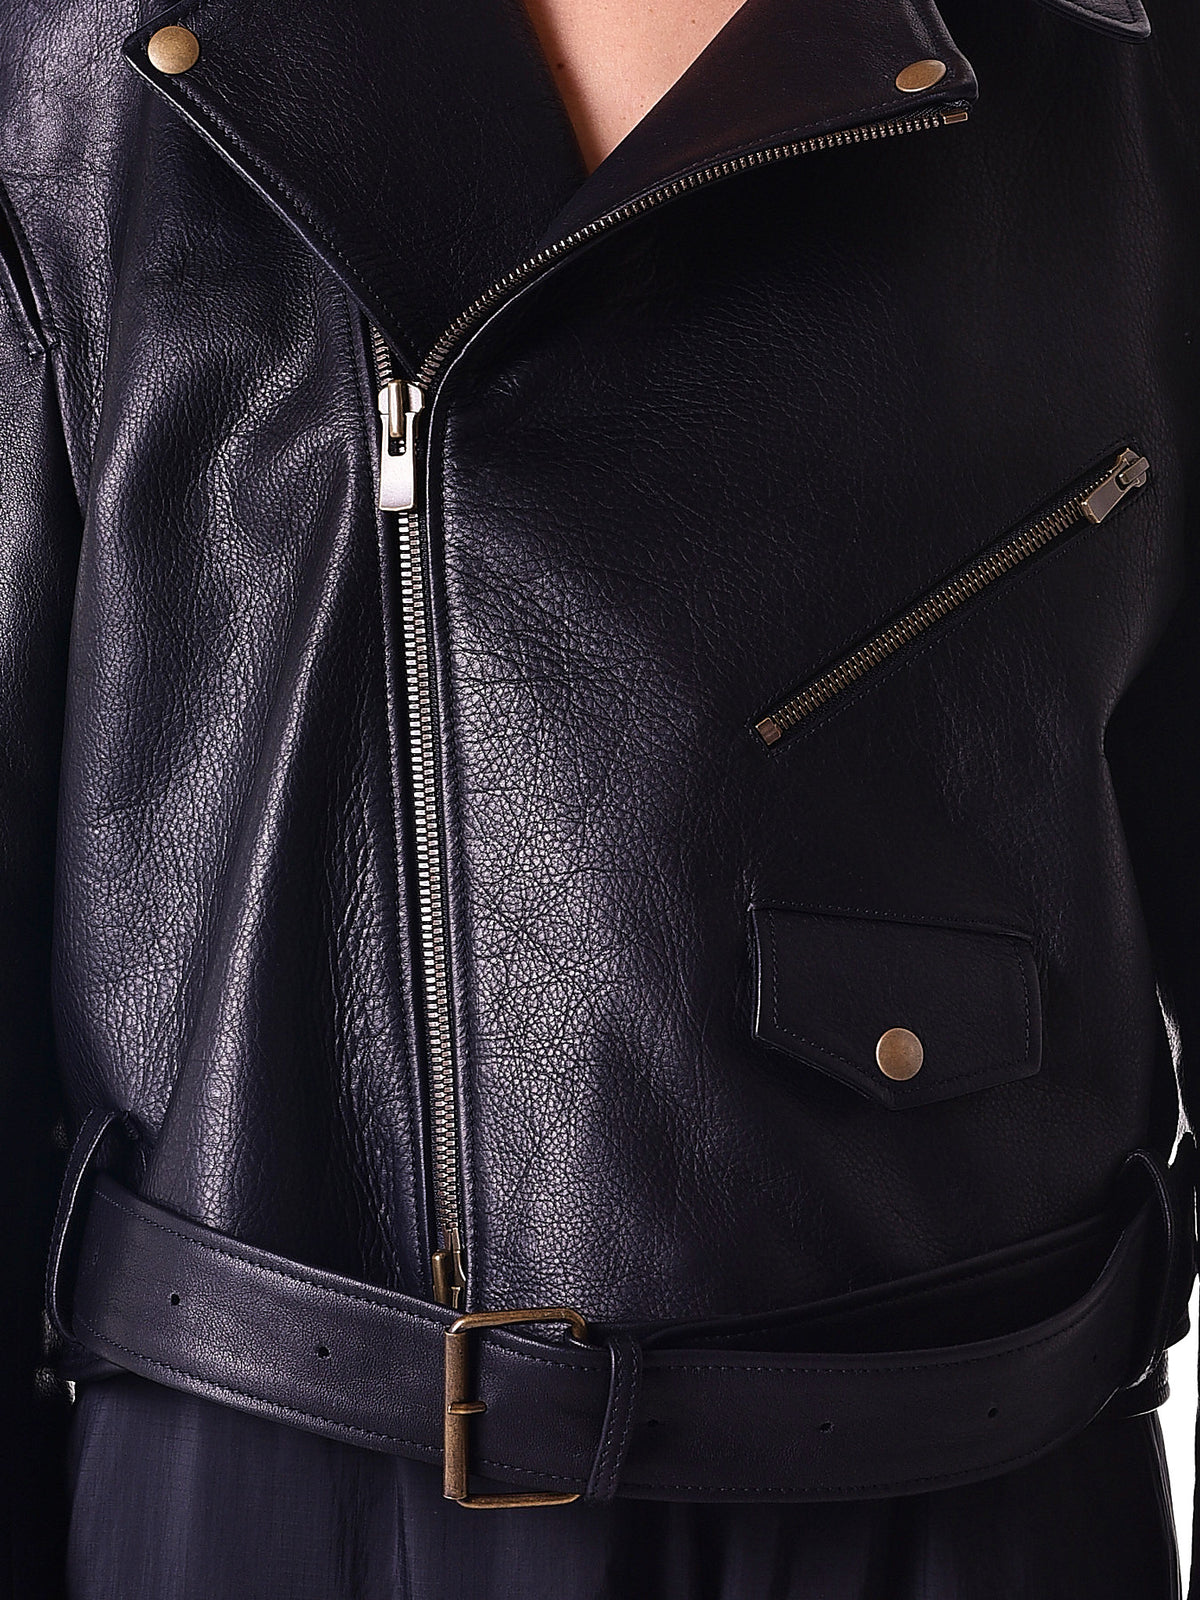 Deconstructed Motorcycle Jacket (JACK11-S12-L1-S12-BLACK)